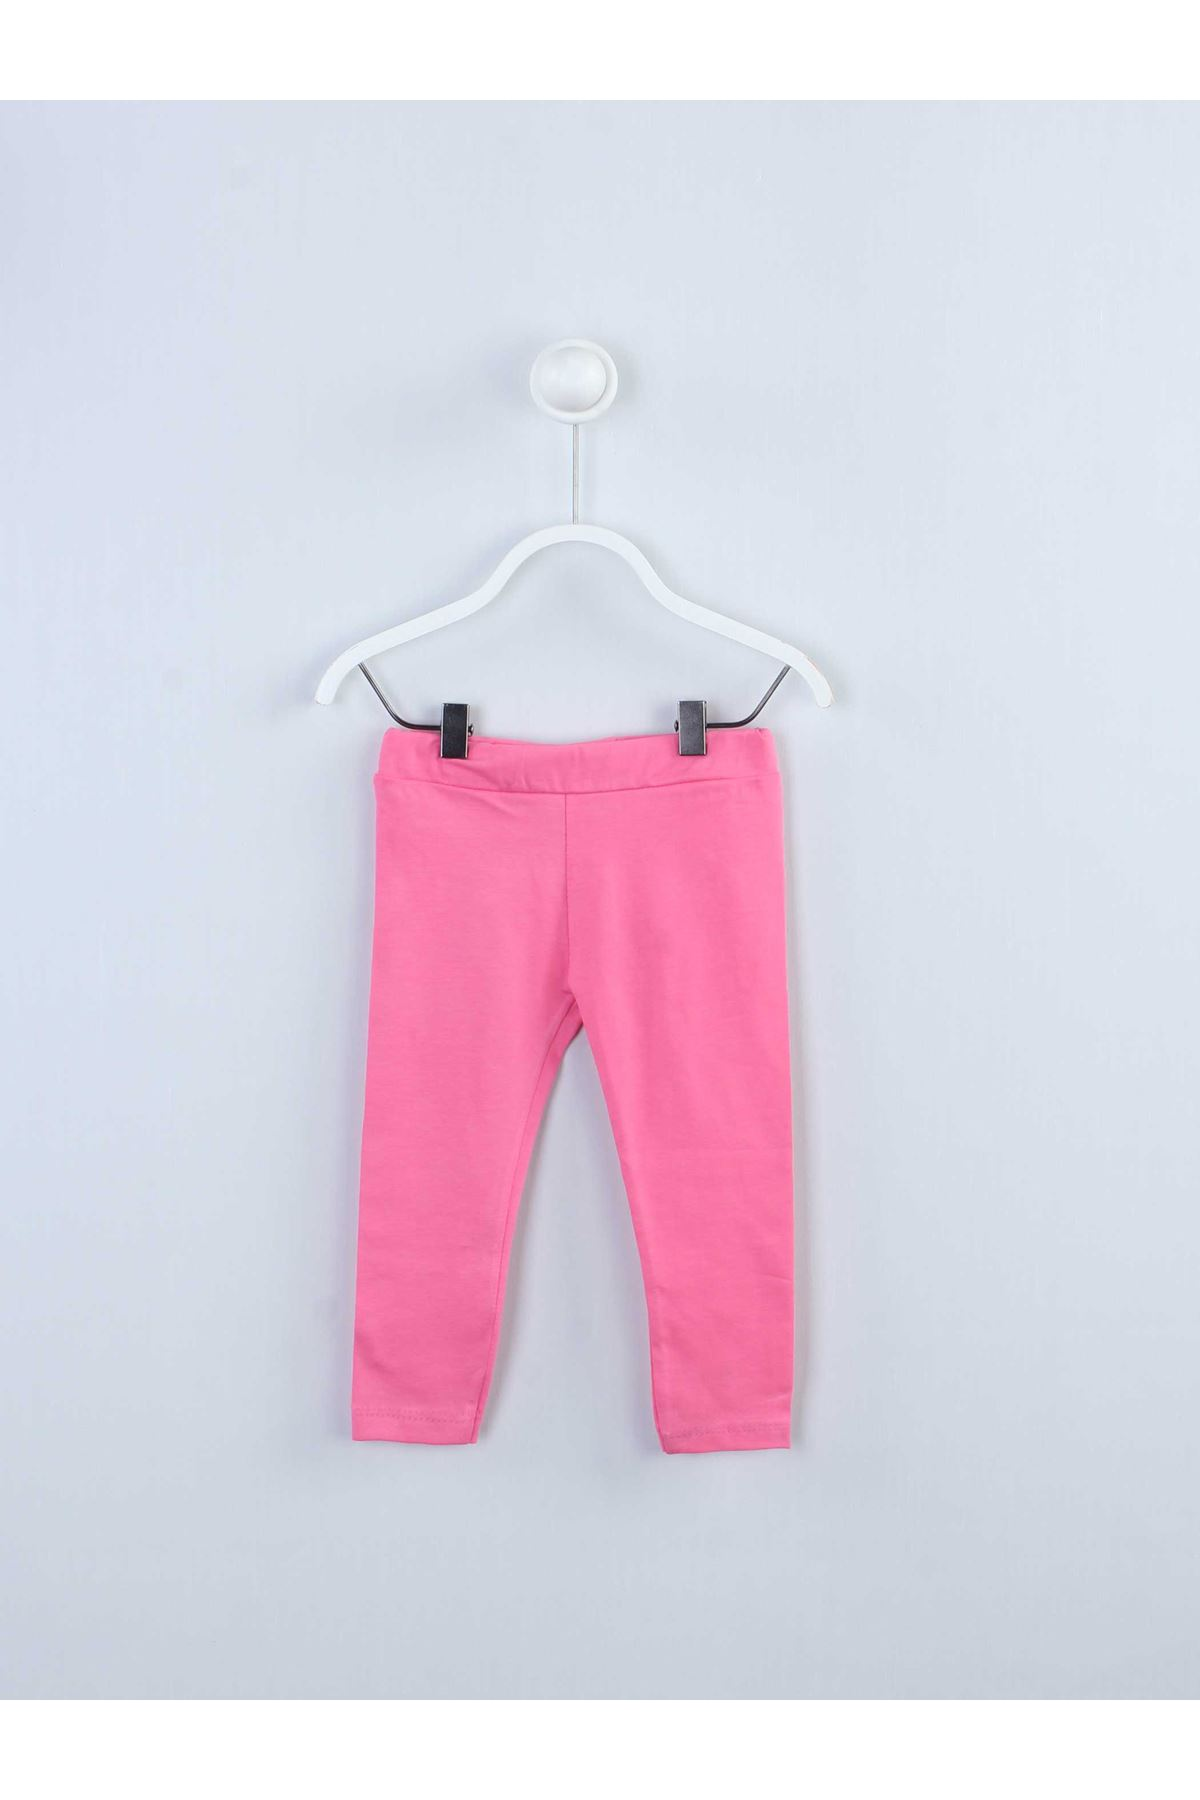 Fuchsia girls tights suit top T-shirt tights cotton daily season wear outfit models